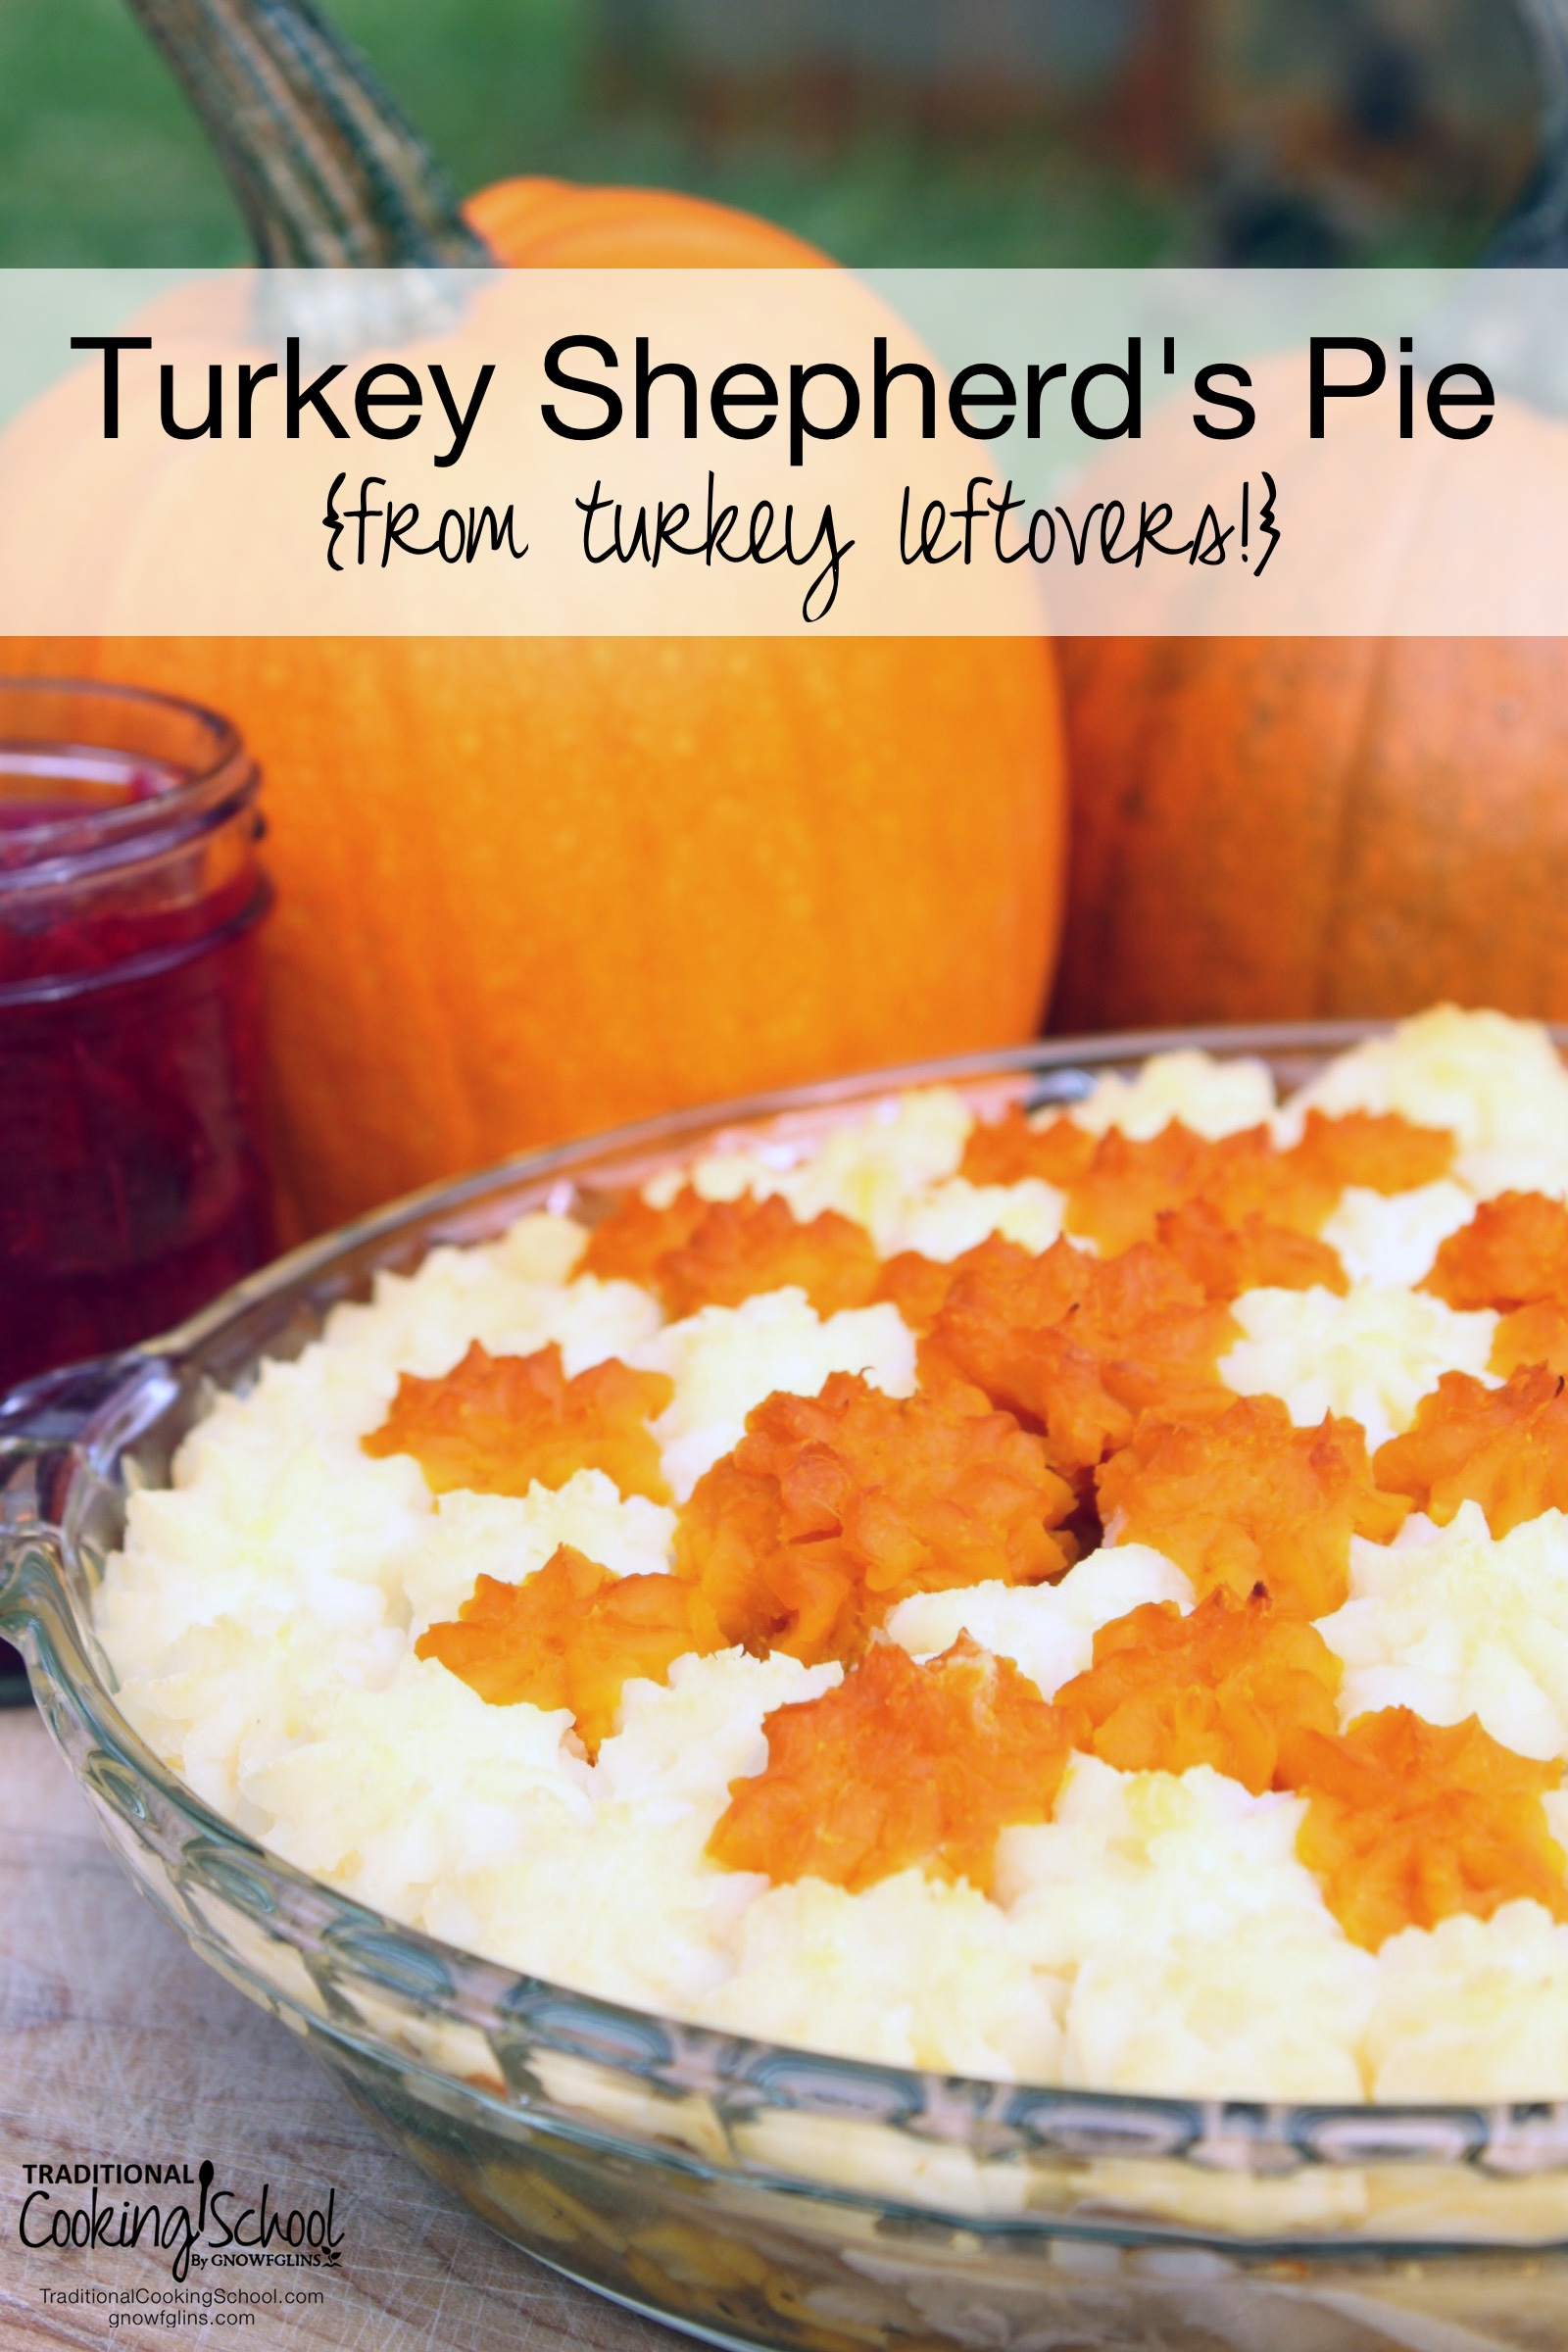 """Turkey Shepherd's Pie {from turkey leftovers!}   Everyone has eaten their fill of a beautiful turkey dinner, and now it's time to go back to the kitchen... To deal with leftovers. There's a little of this and that, enough turkey to last until cries of """"Turkey again?!"""" ring in your ears. It's tempting to throw it all into the fridge and start Googling """"leftover turkey recipes"""", isn't it? If you take 10 extra minutes, you can have a shepherd's pie ready to go for your next meal.   TraditionalCookingSchool.com"""